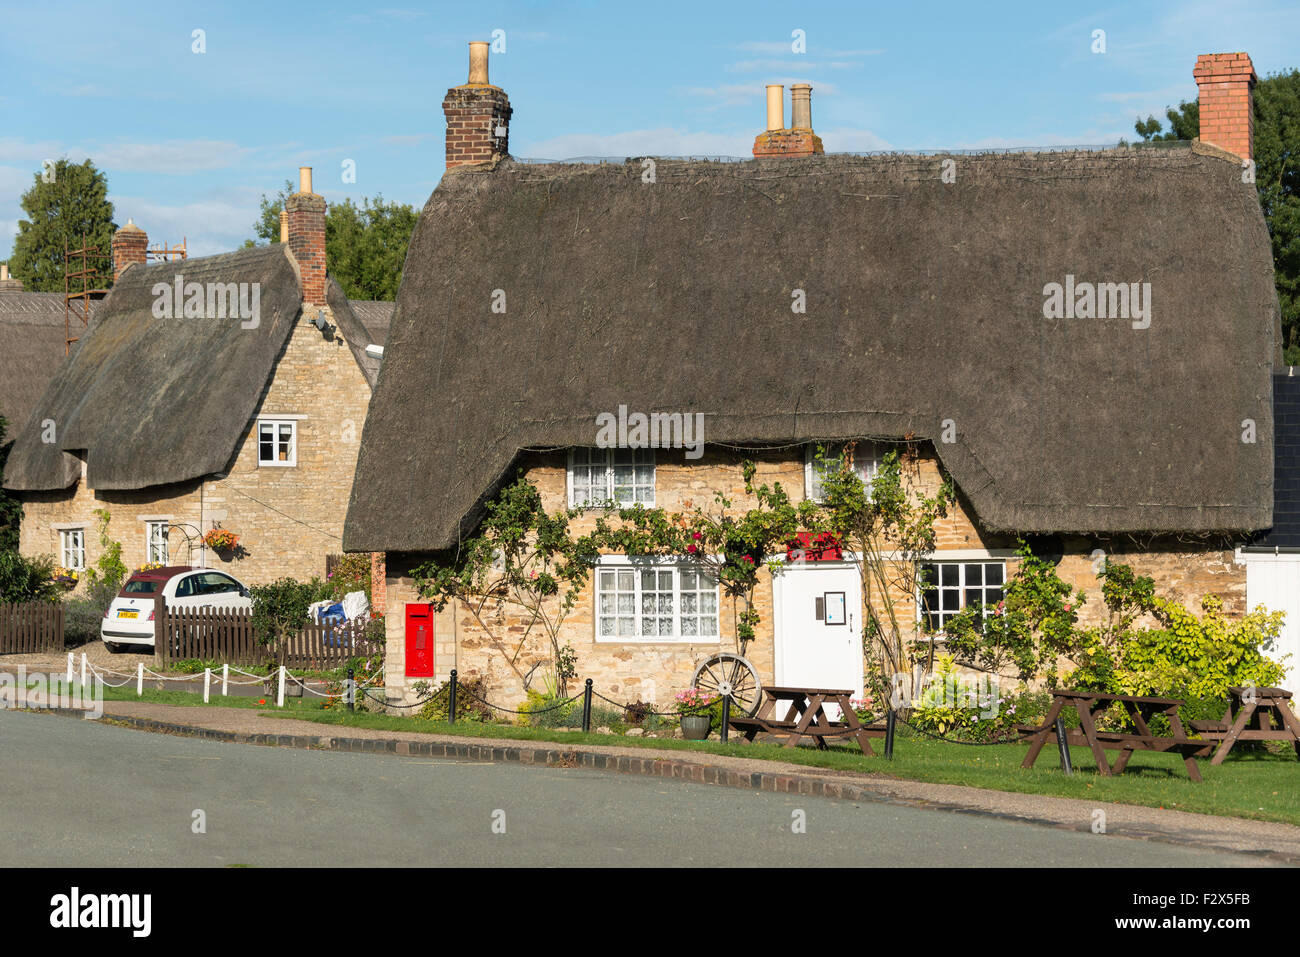 Thatched cottages in village of Weekley, Northamptonshire, England, United Kingdom - Stock Image